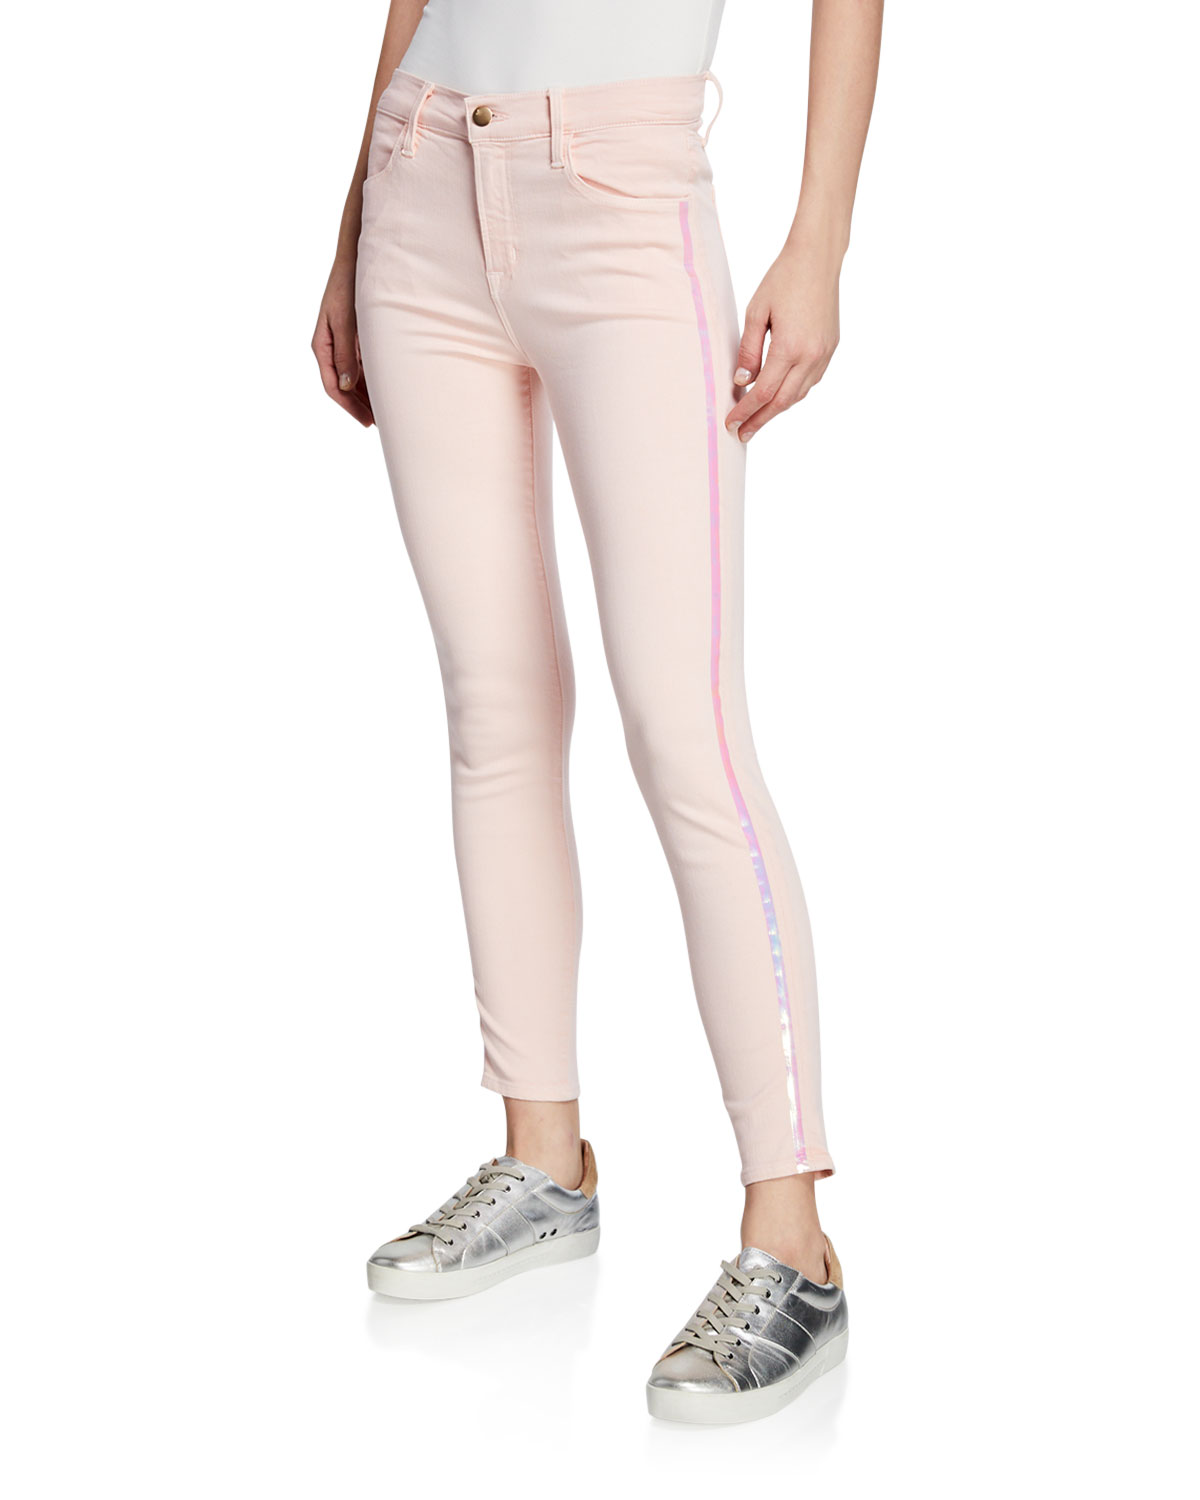 Alana High-Rise Cropped Super Skinny Jeans W/ Ladder Lace, White, White Ladder Lace